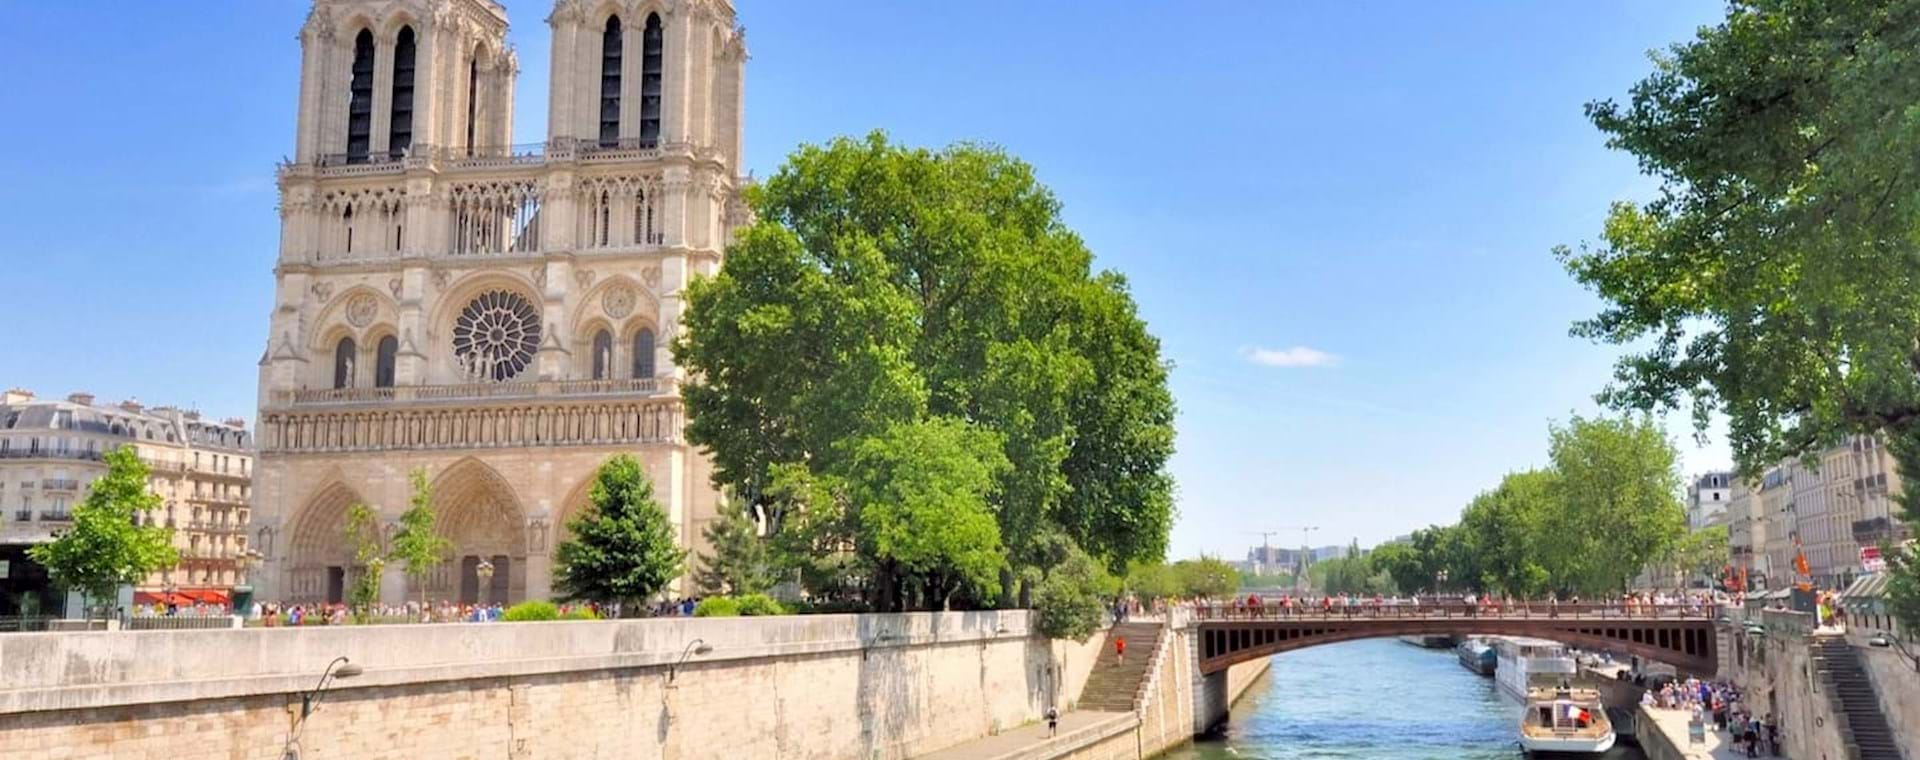 Perfect day in Paris: Louvre, Notre Dame Island & Cruise Down the Seine